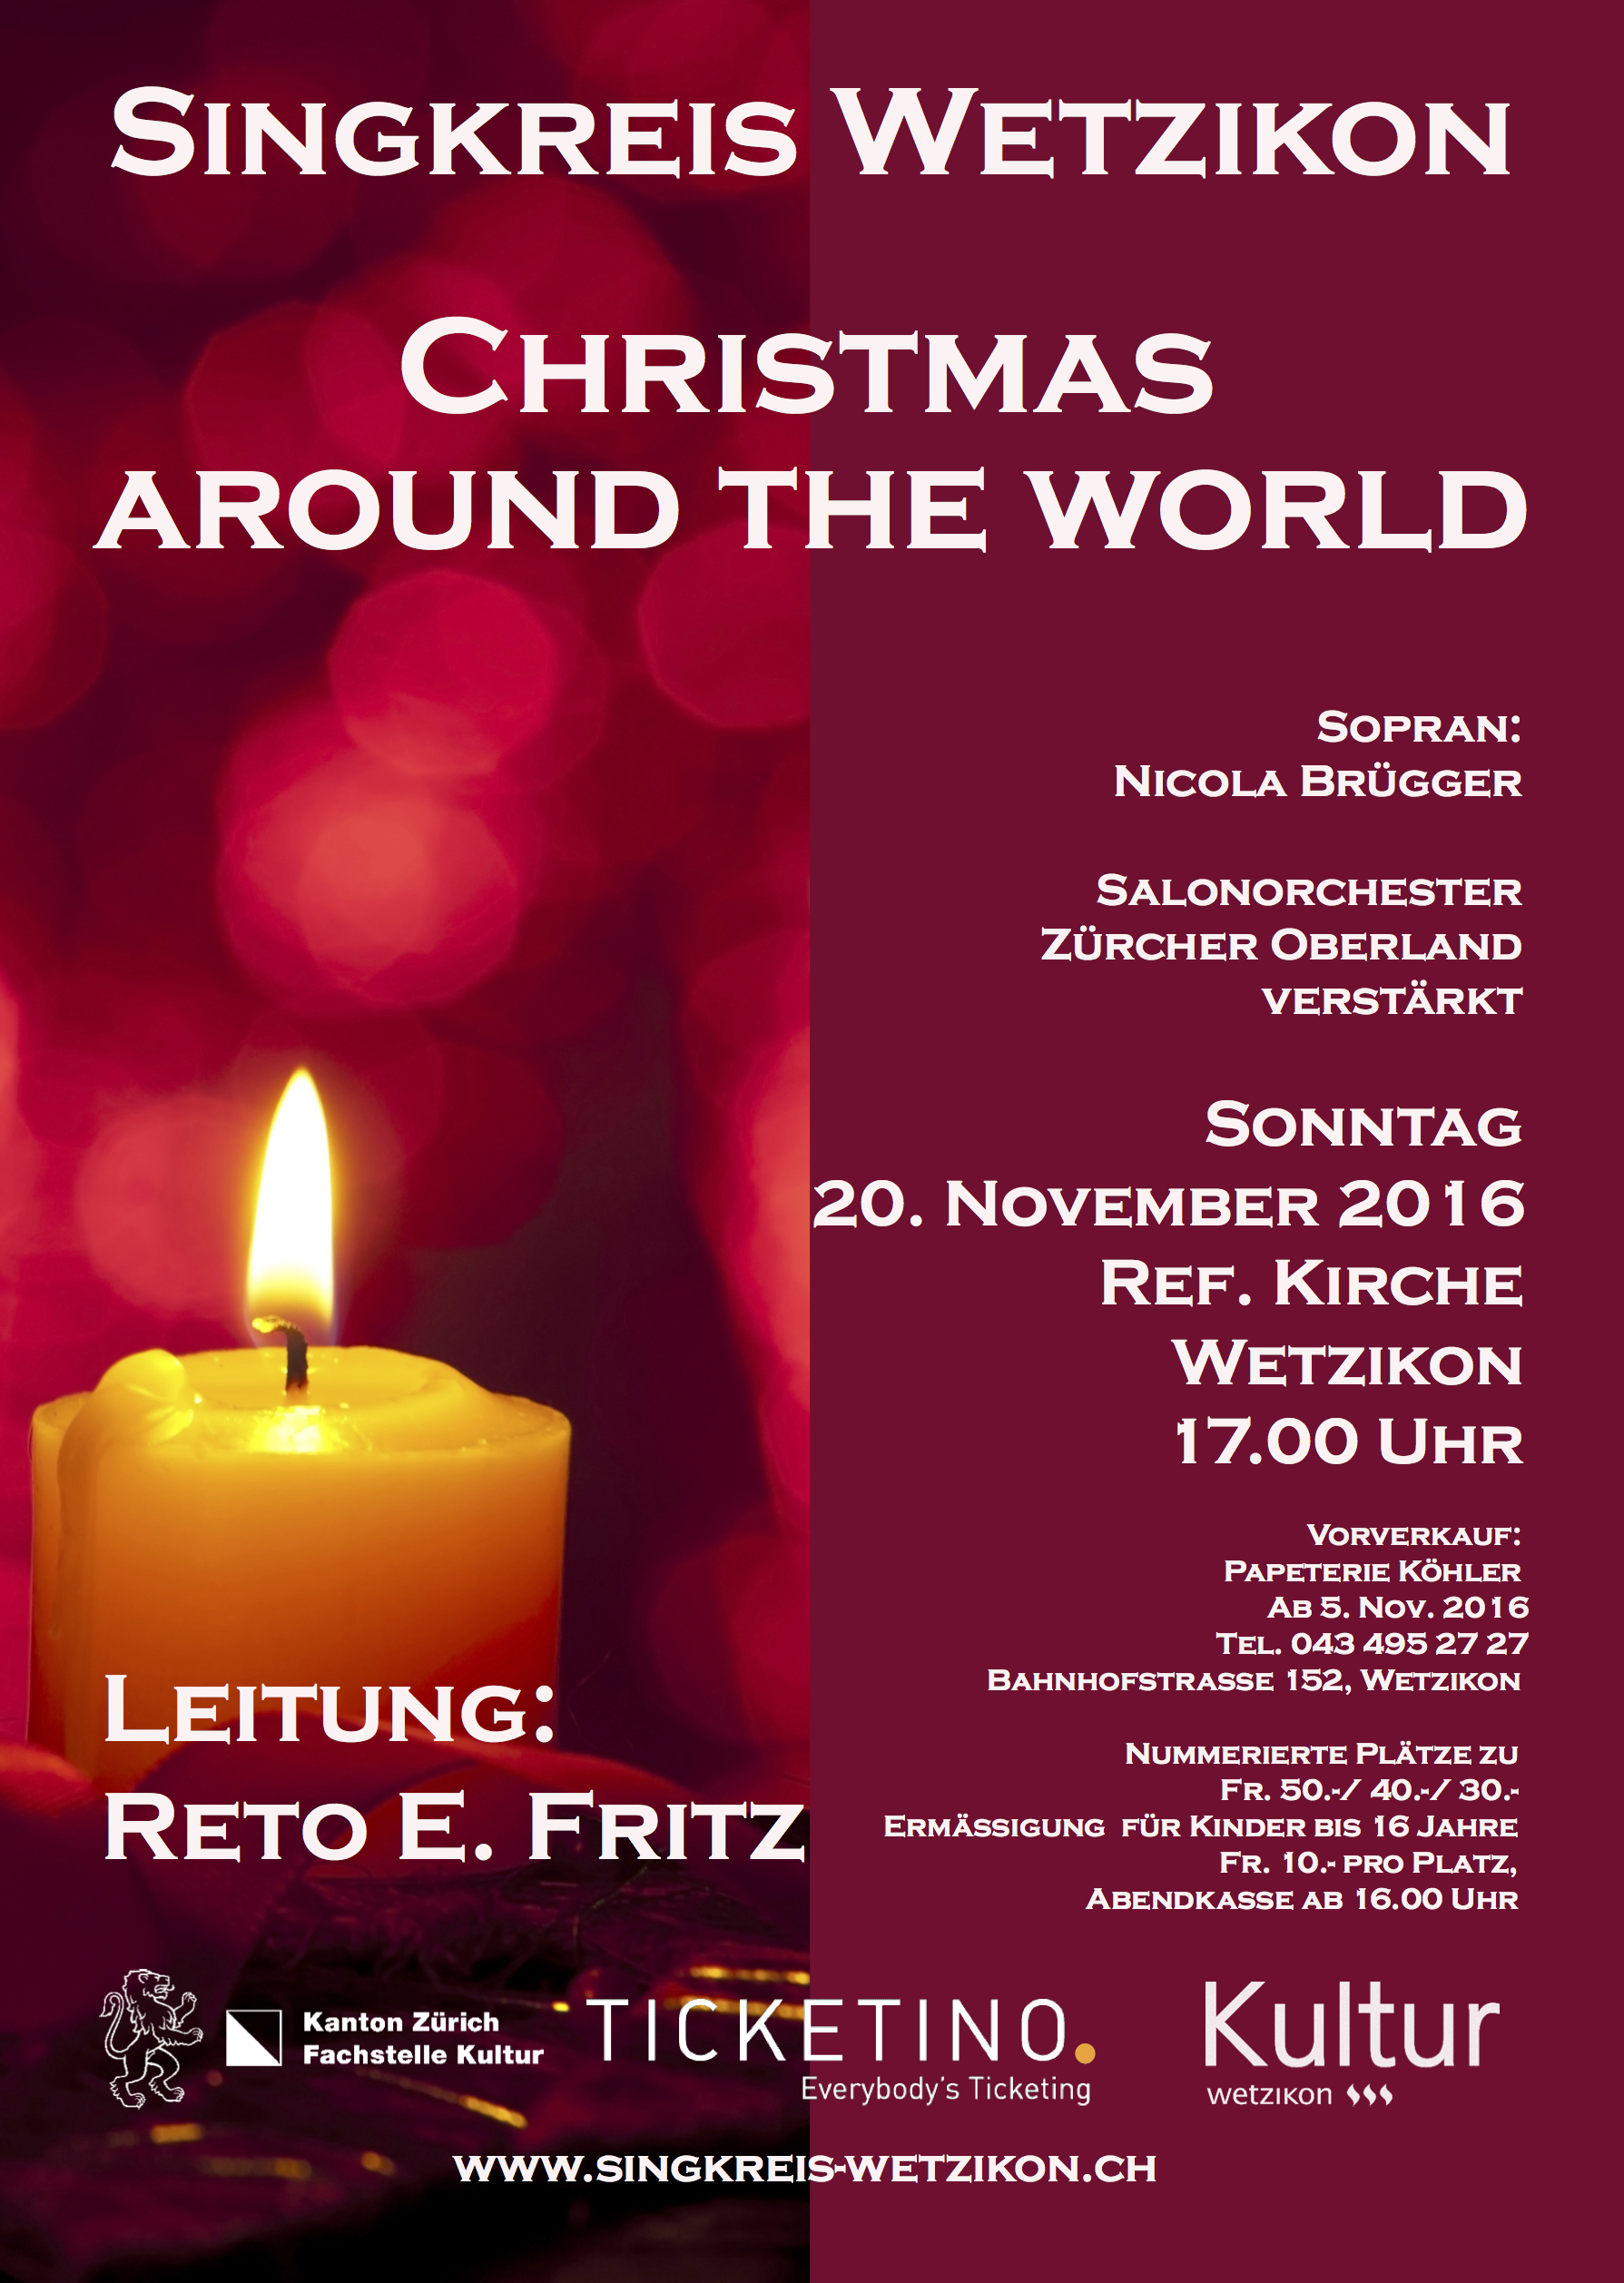 Christmas Around The World, 20. November 2016